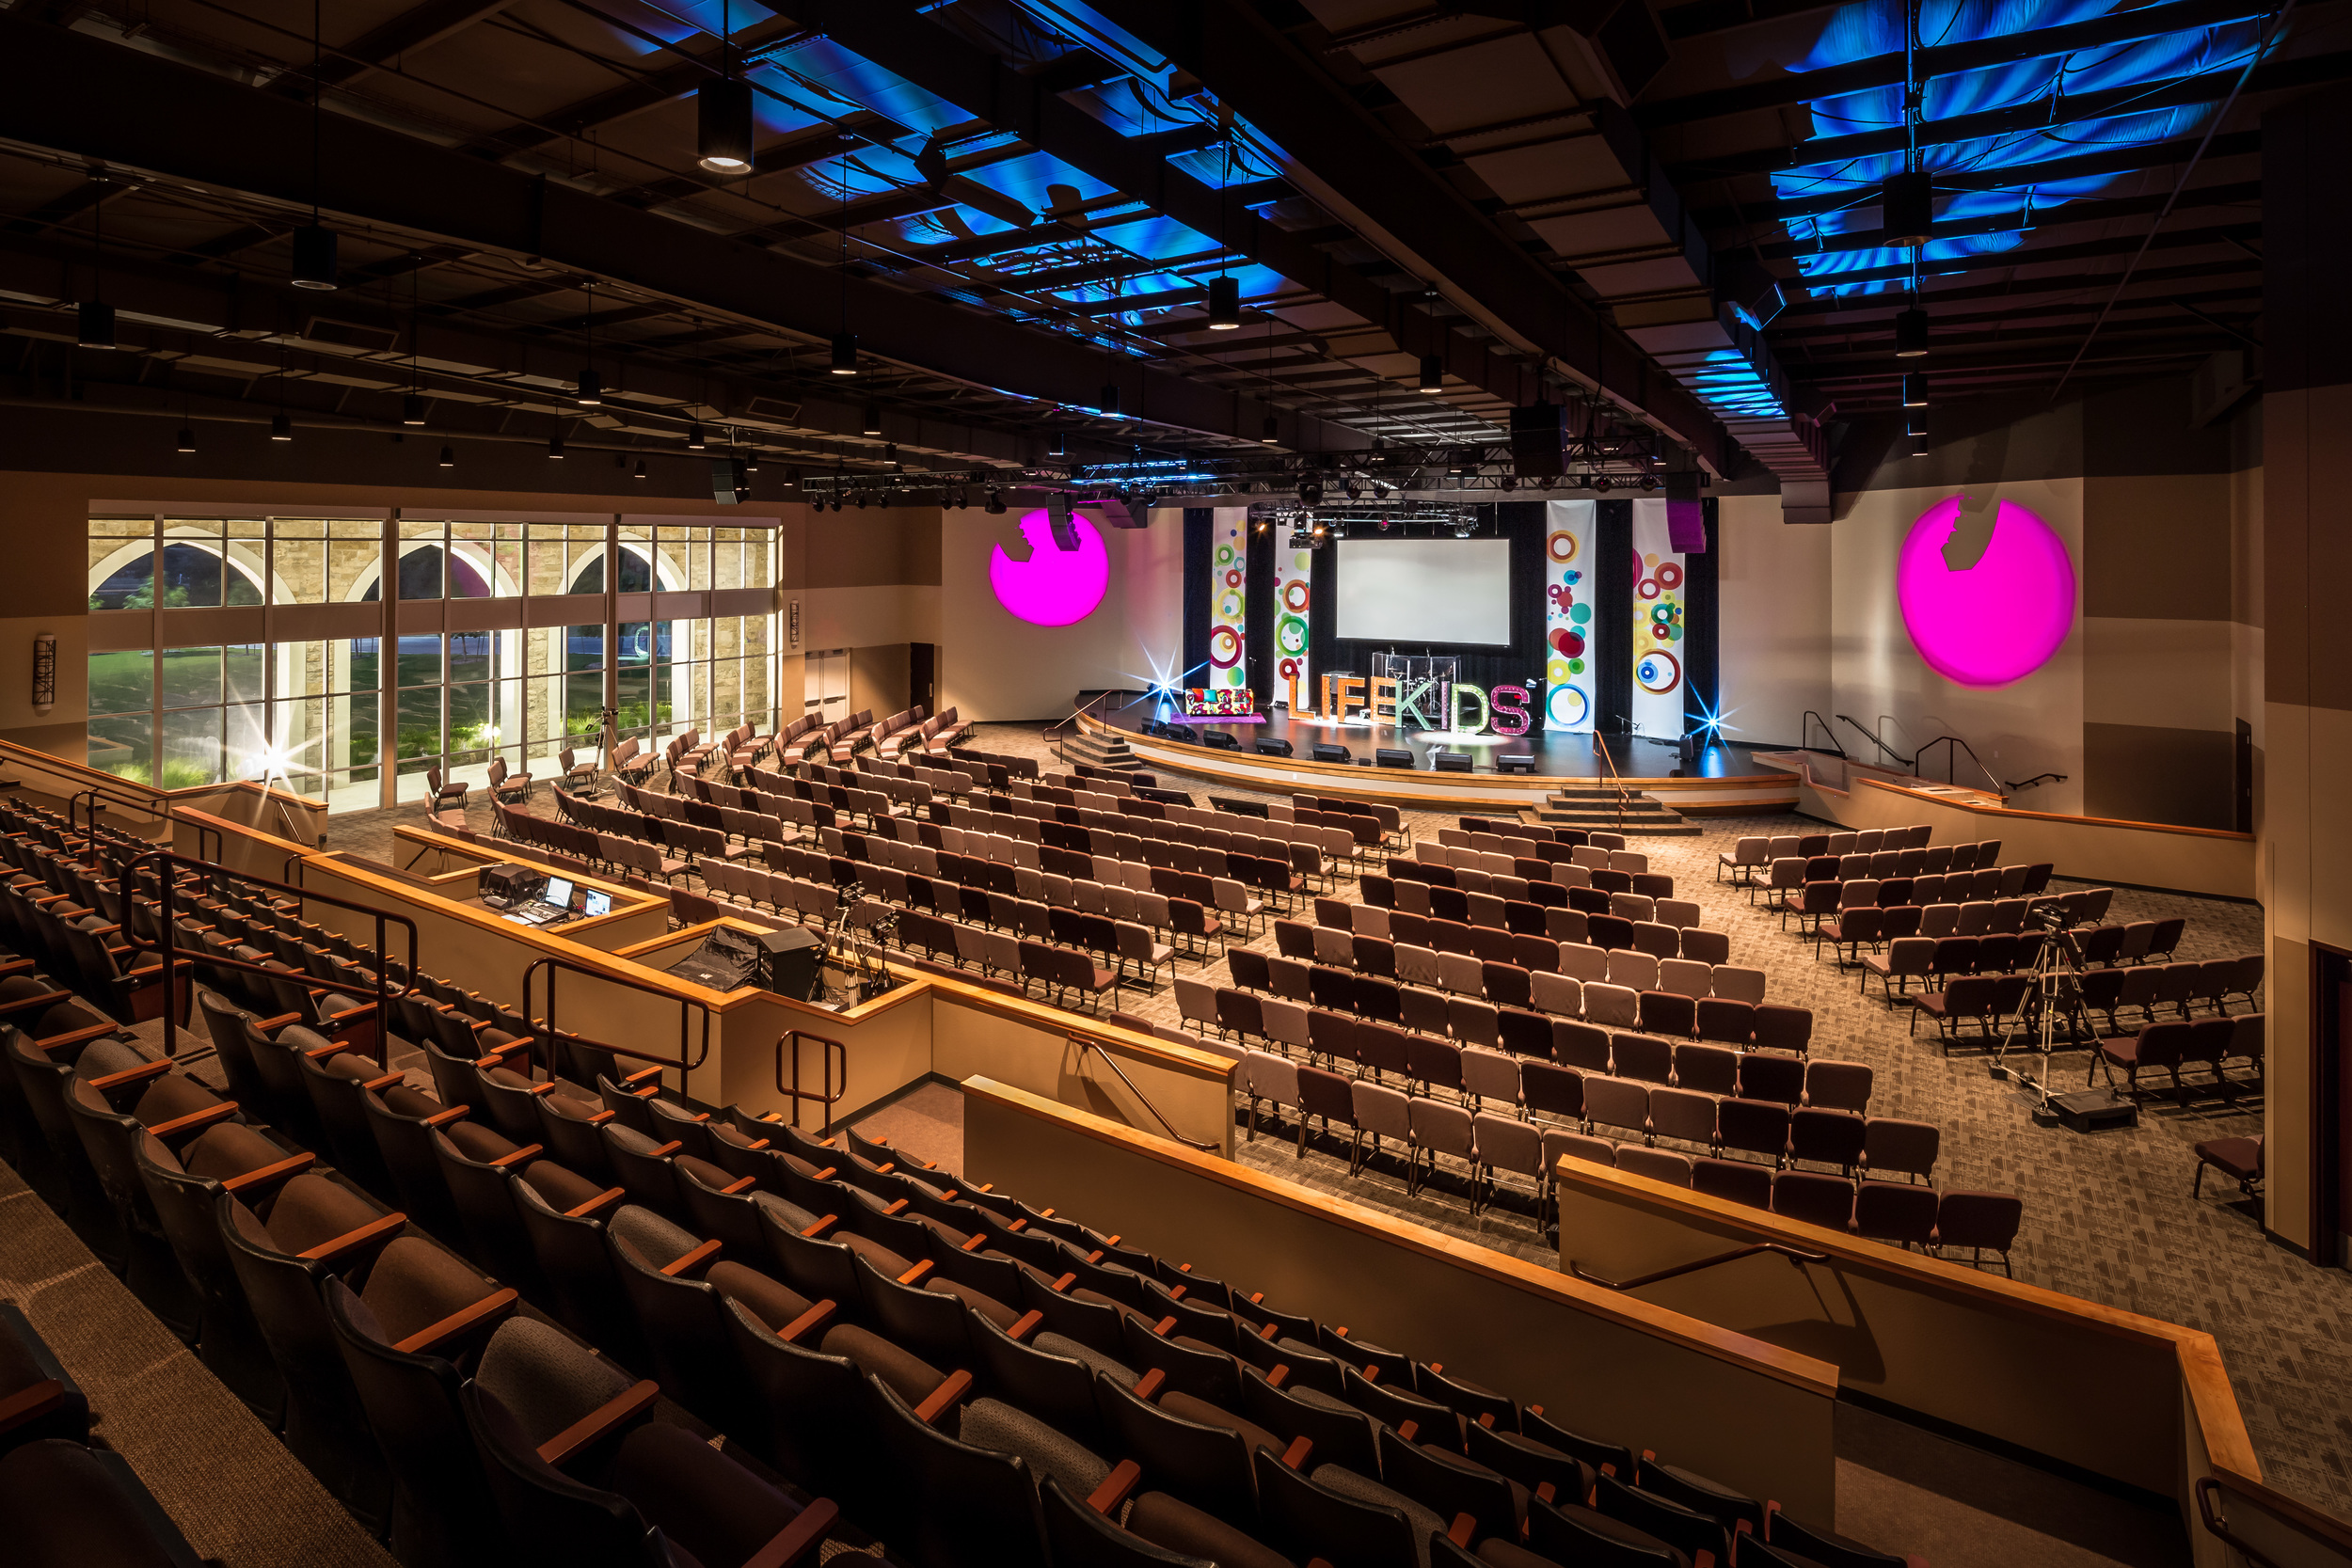 The auditorium at LifeAustin